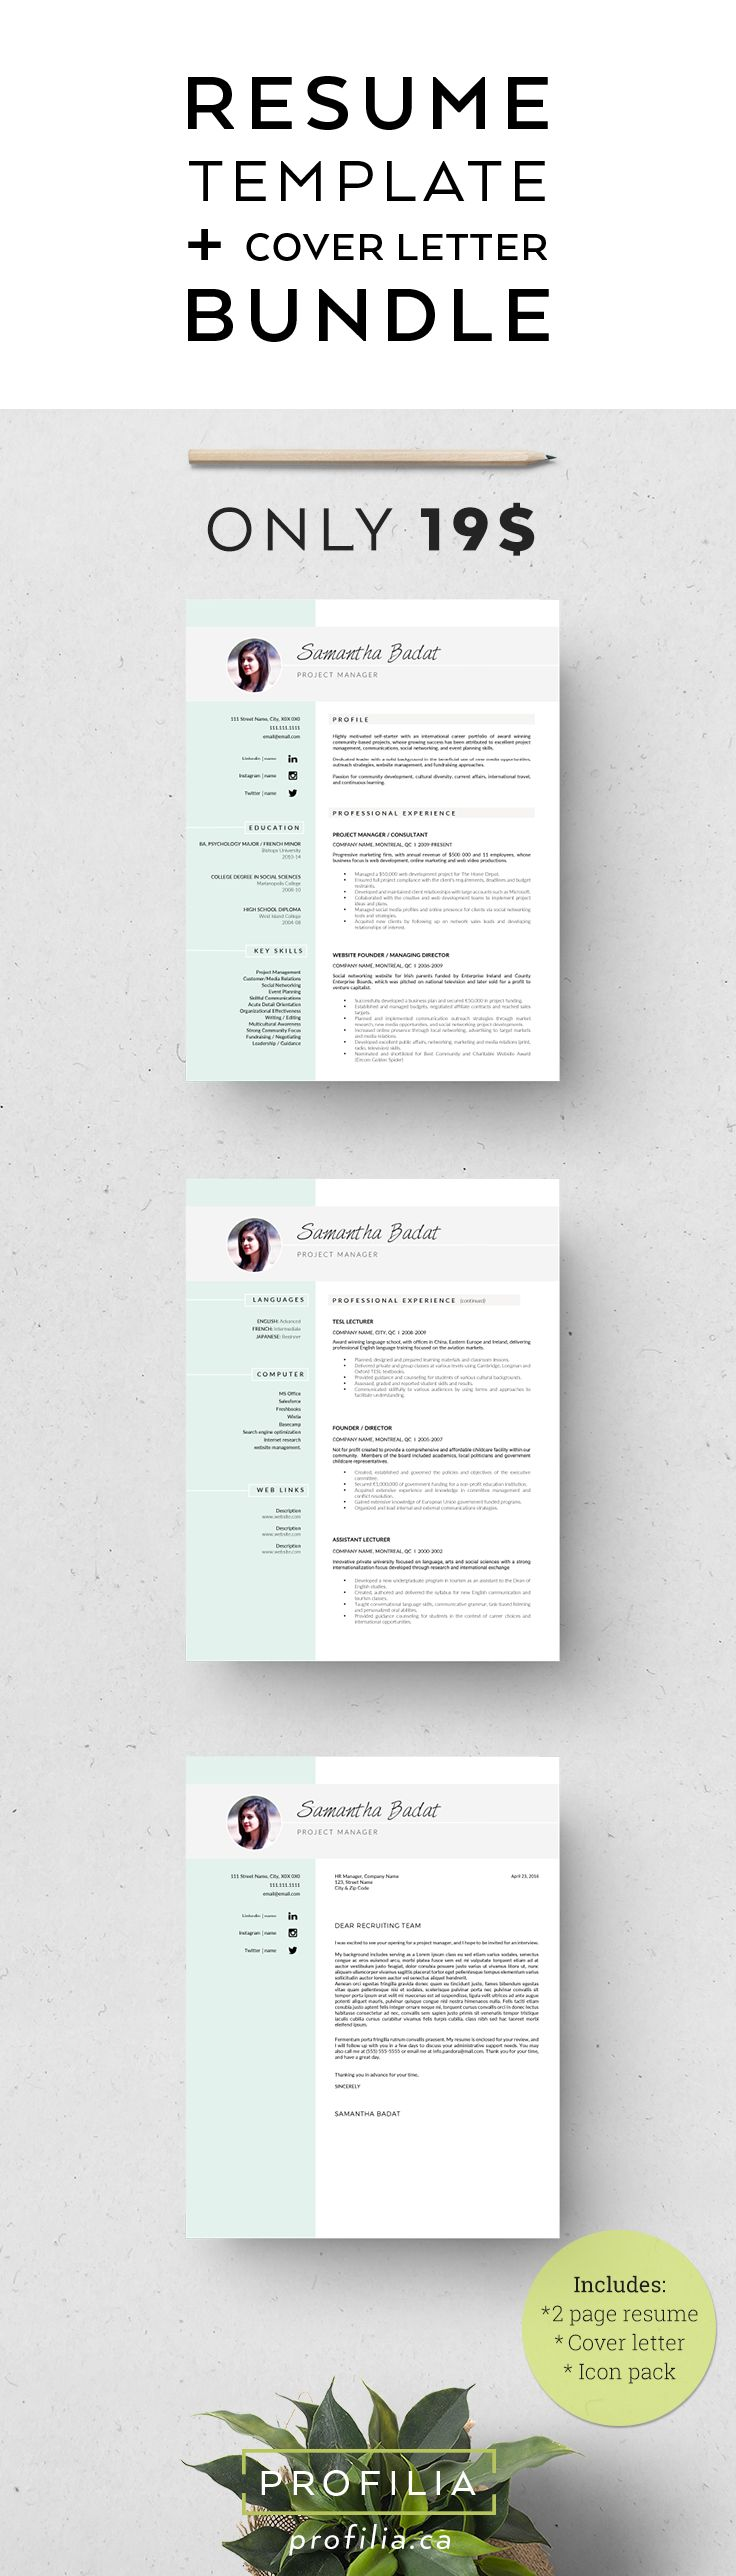 cover letter for sales manager position%0A Modern resume  u     Cover letter Template    Page bundle with fonts